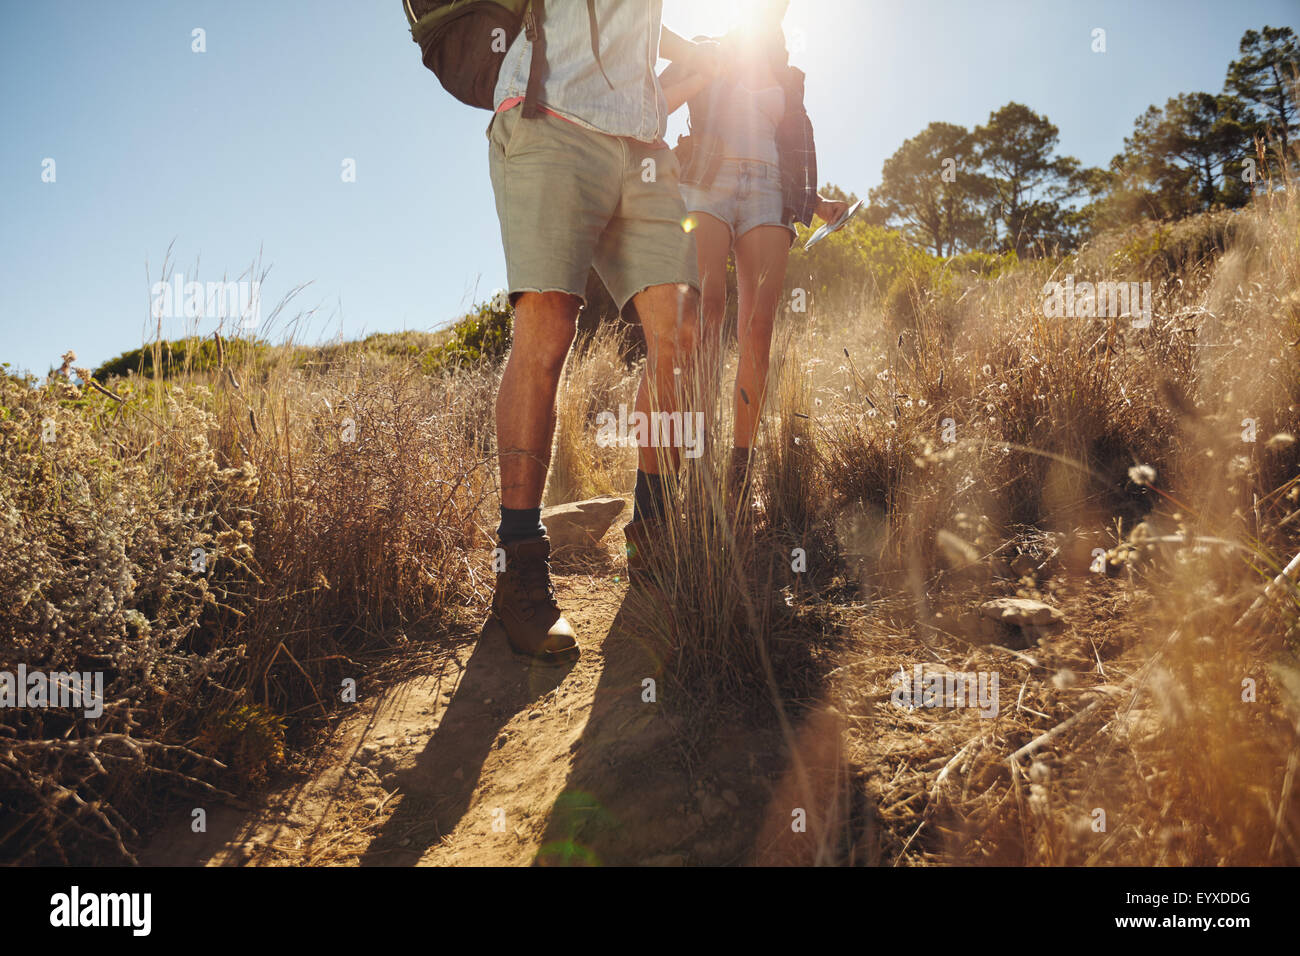 Low angle view of man and woman hikers walking on dirt trail on mountain on a sunny day. Couple hiking in nature. - Stock Image